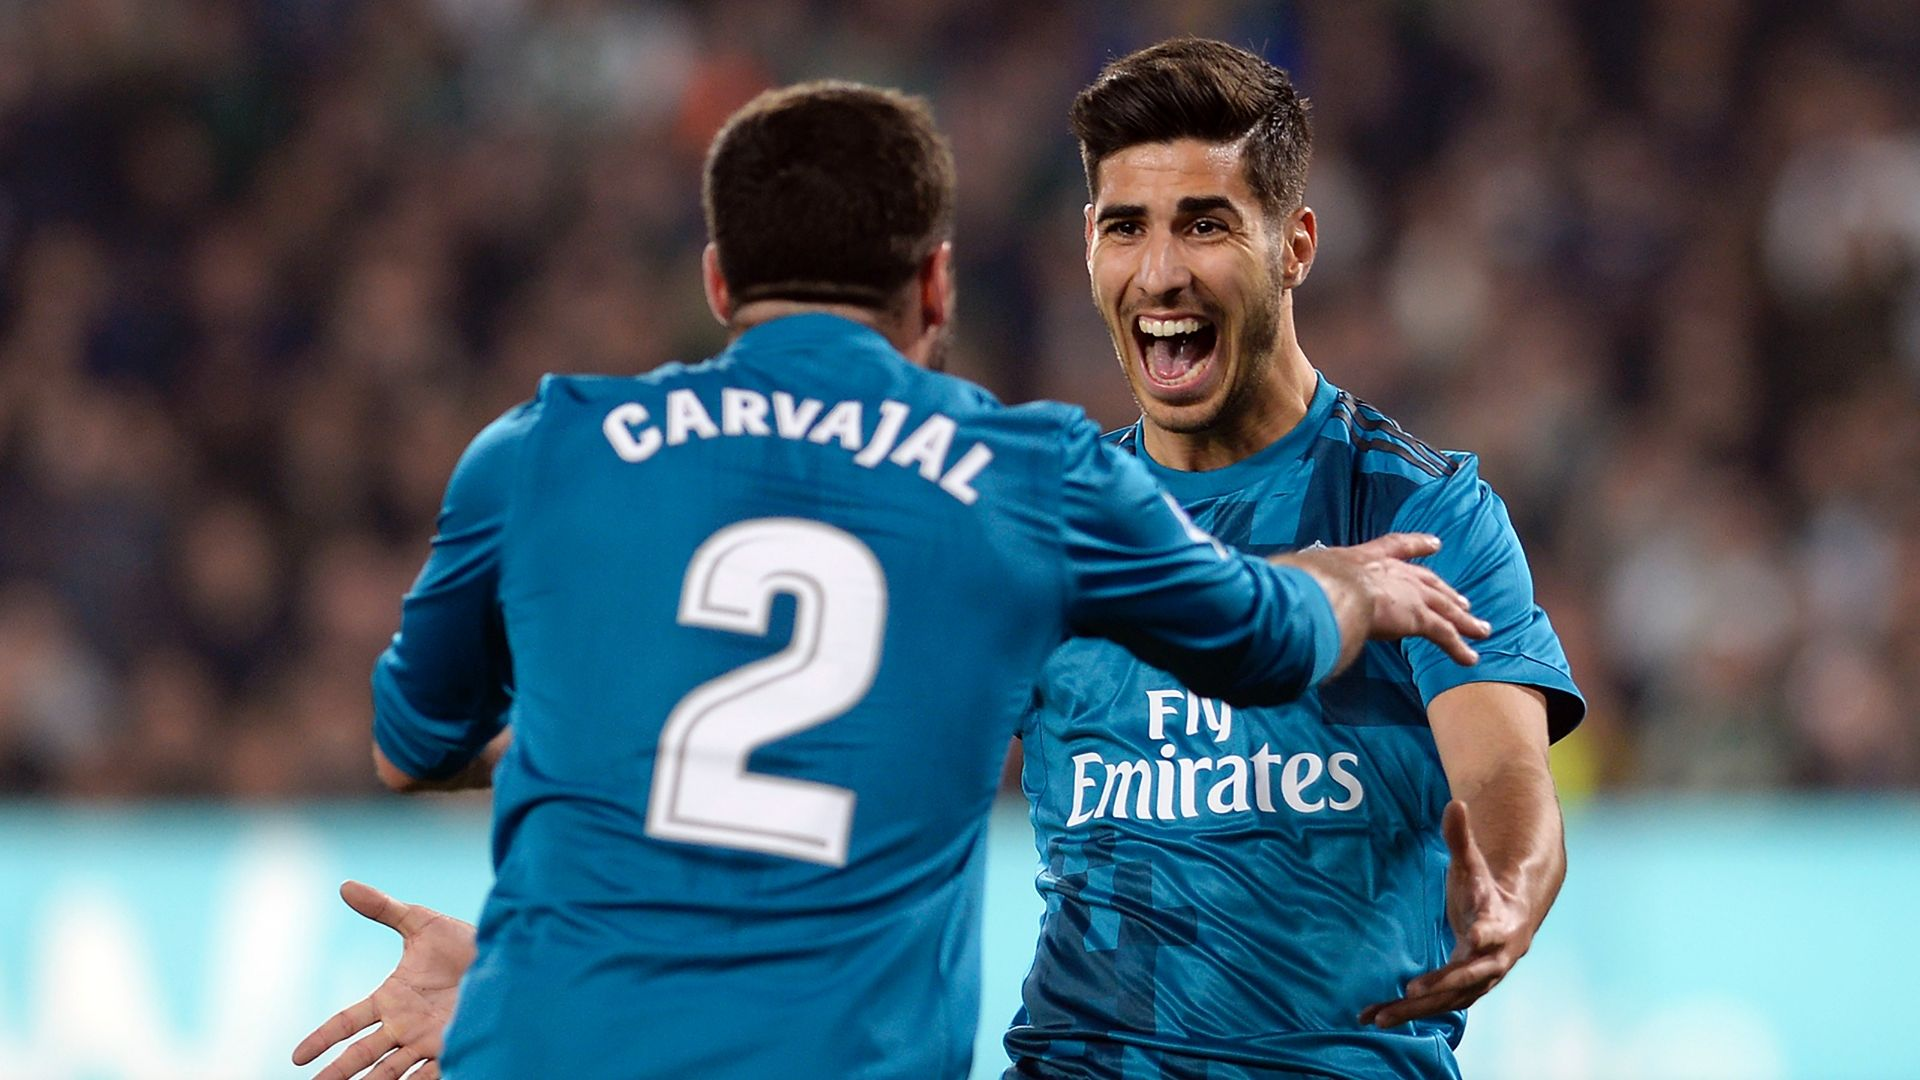 Asensio jumps Benzema in Real pecking order